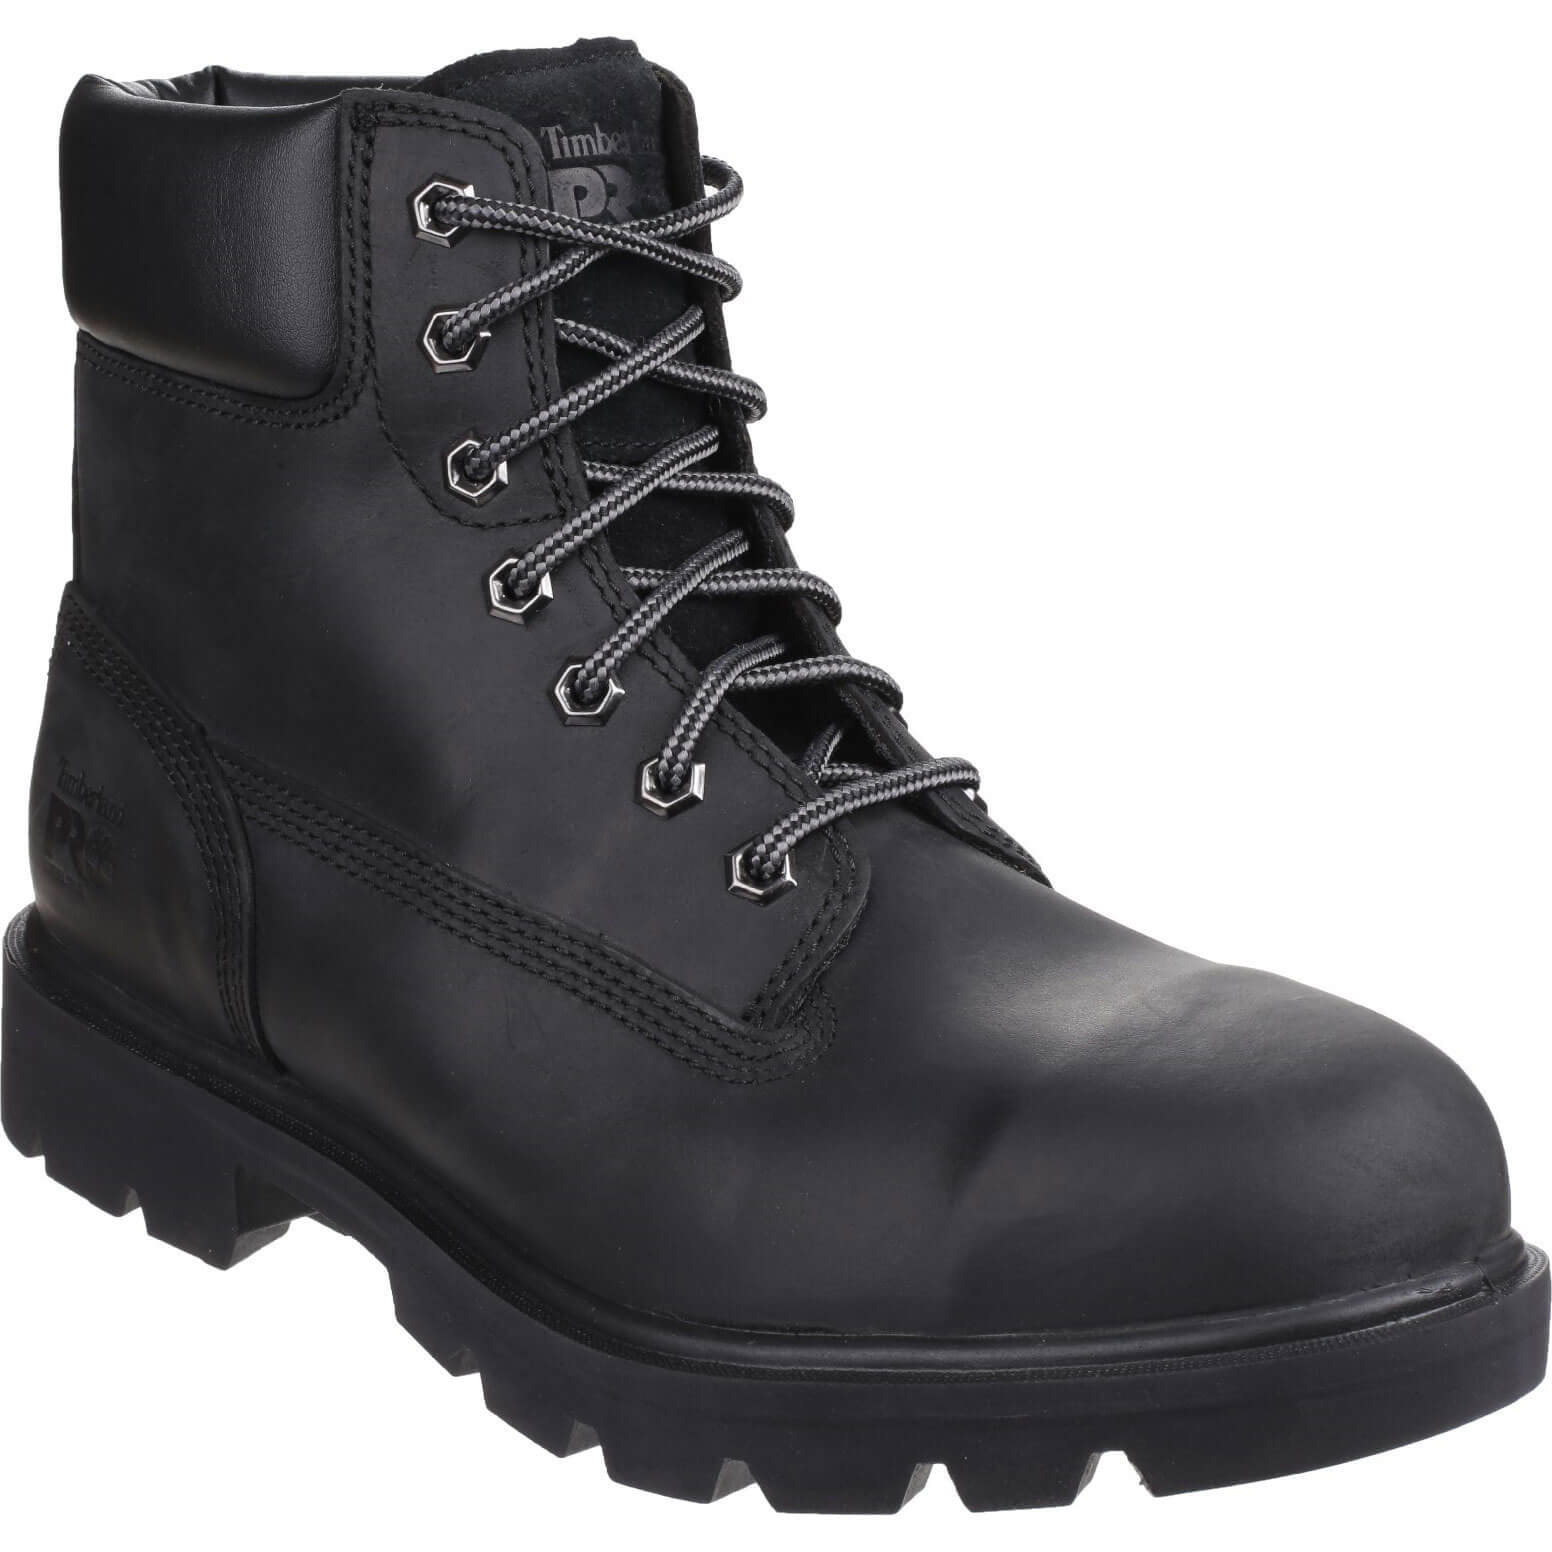 Image of Timberland Pro Mens Saw Horse Safety Boots Black Size 11